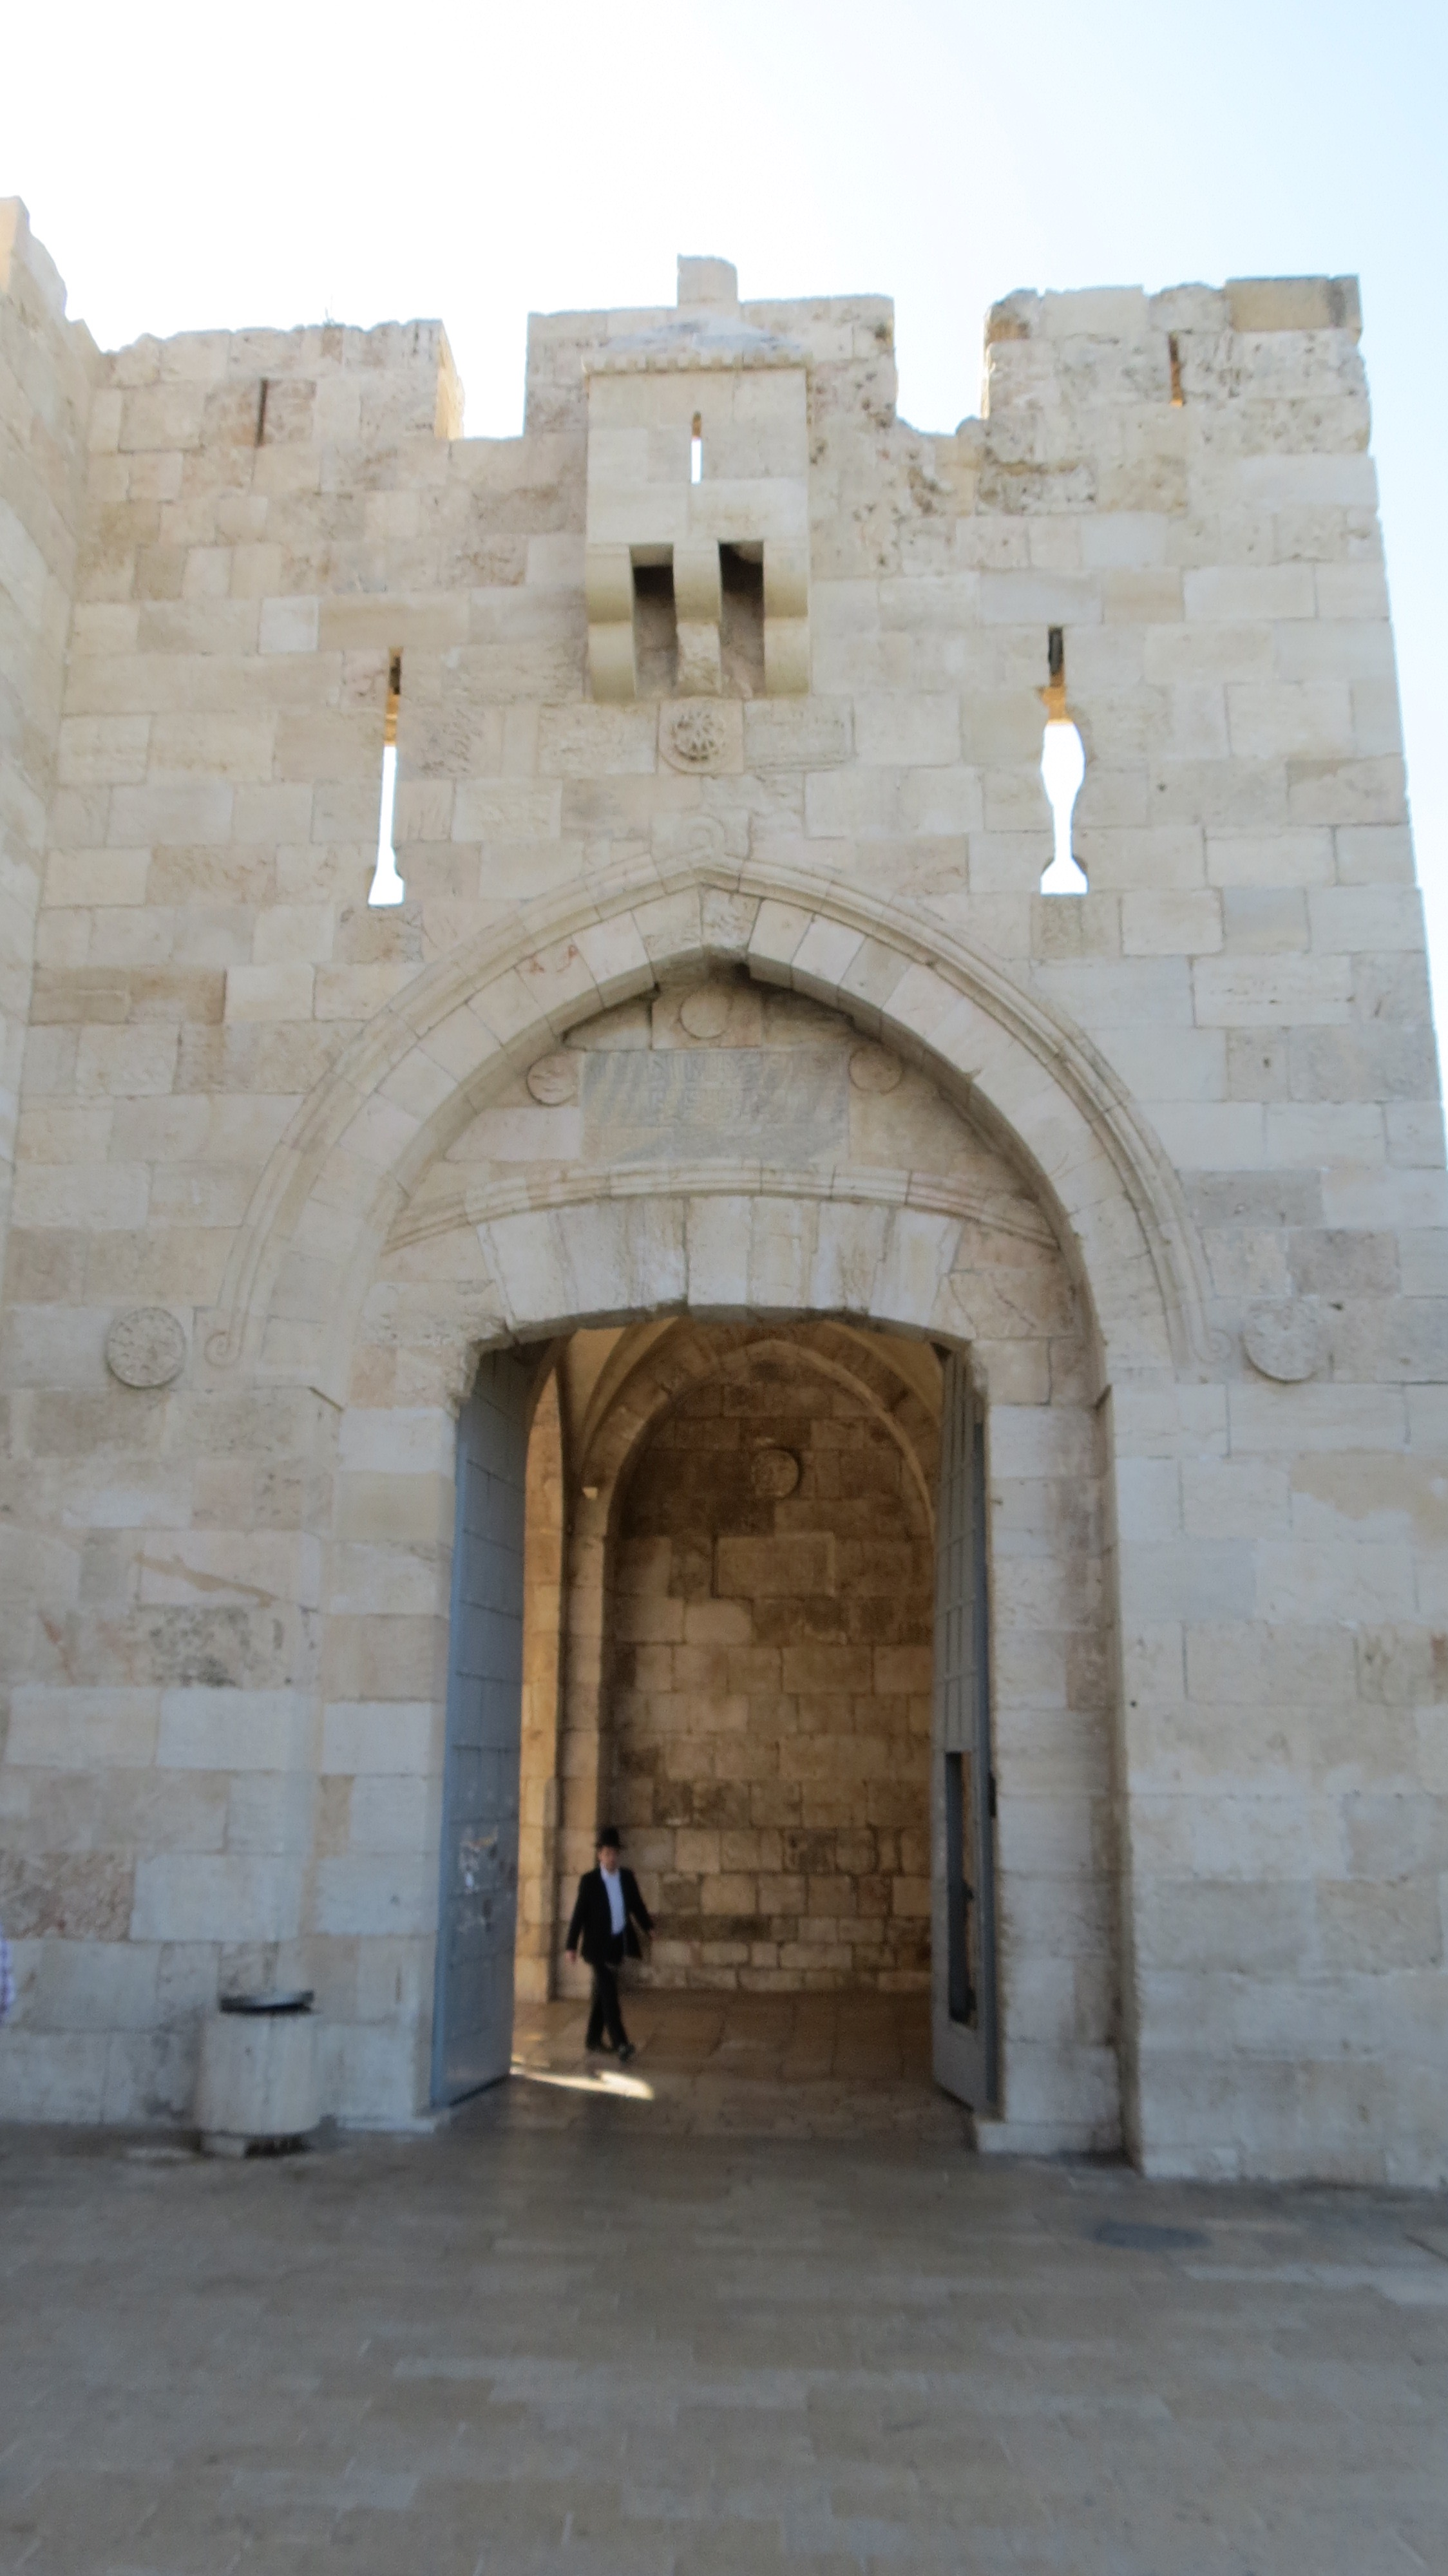 The Jaffa Gate